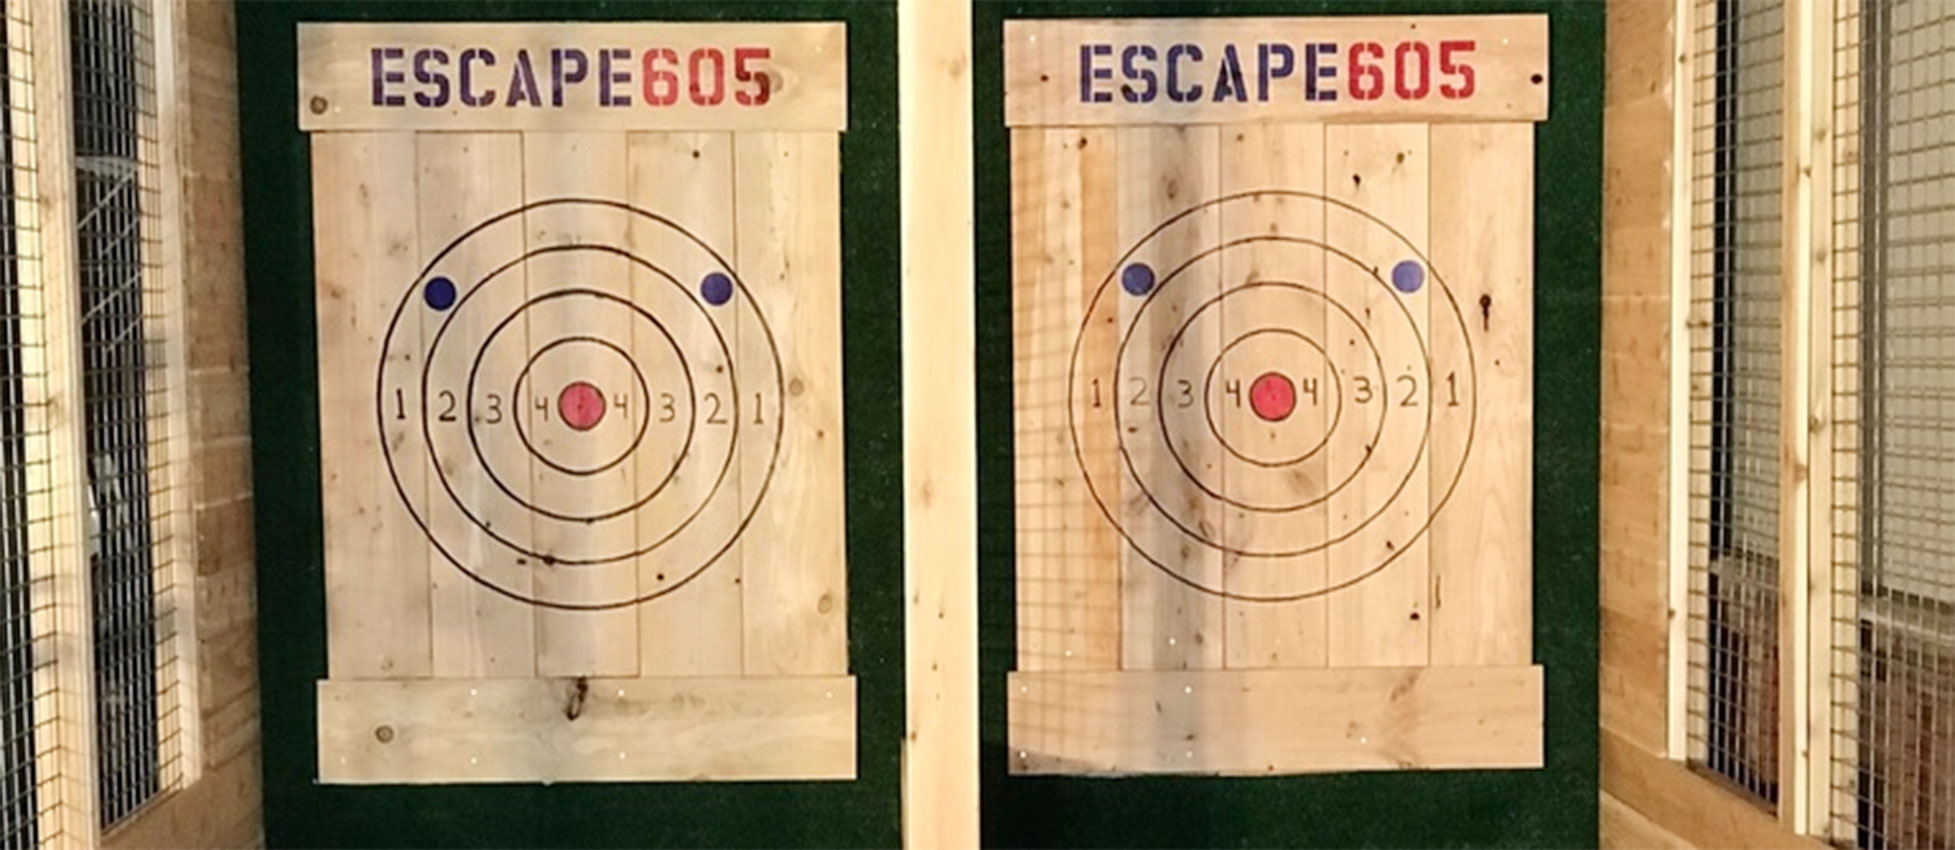 Escape 605 axe throwing business downtown Sioux Falls